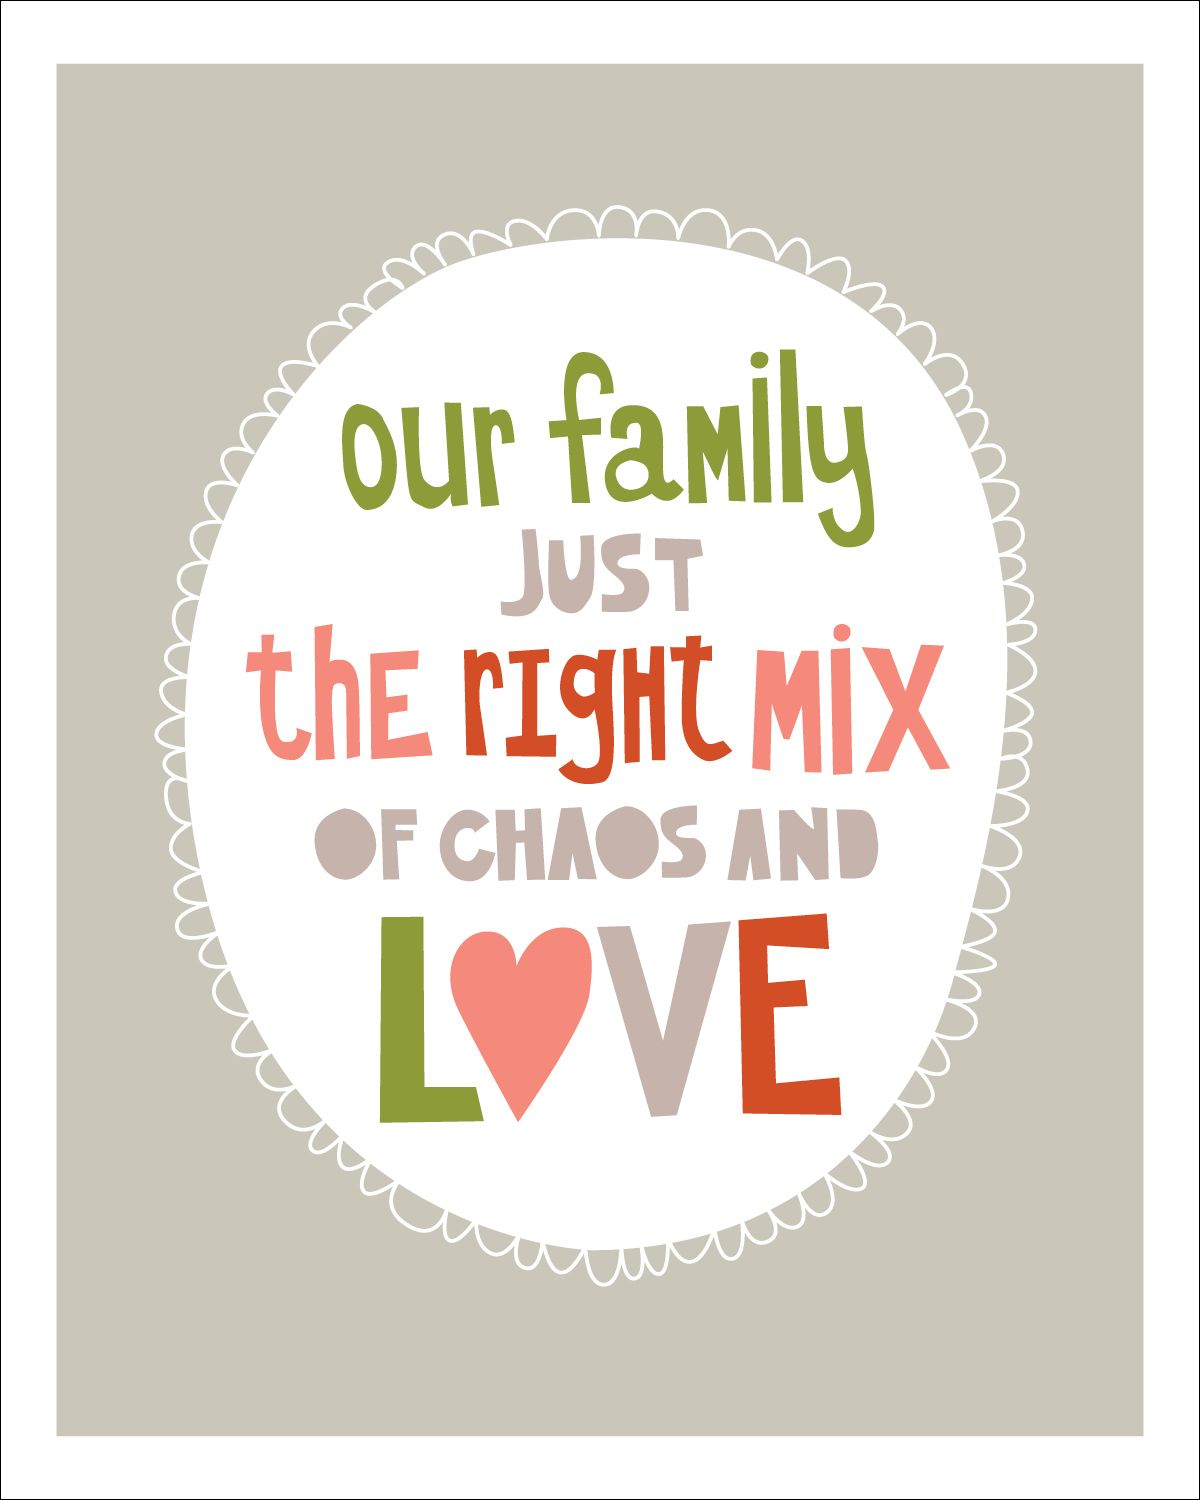 Happy Love Quotes About Family